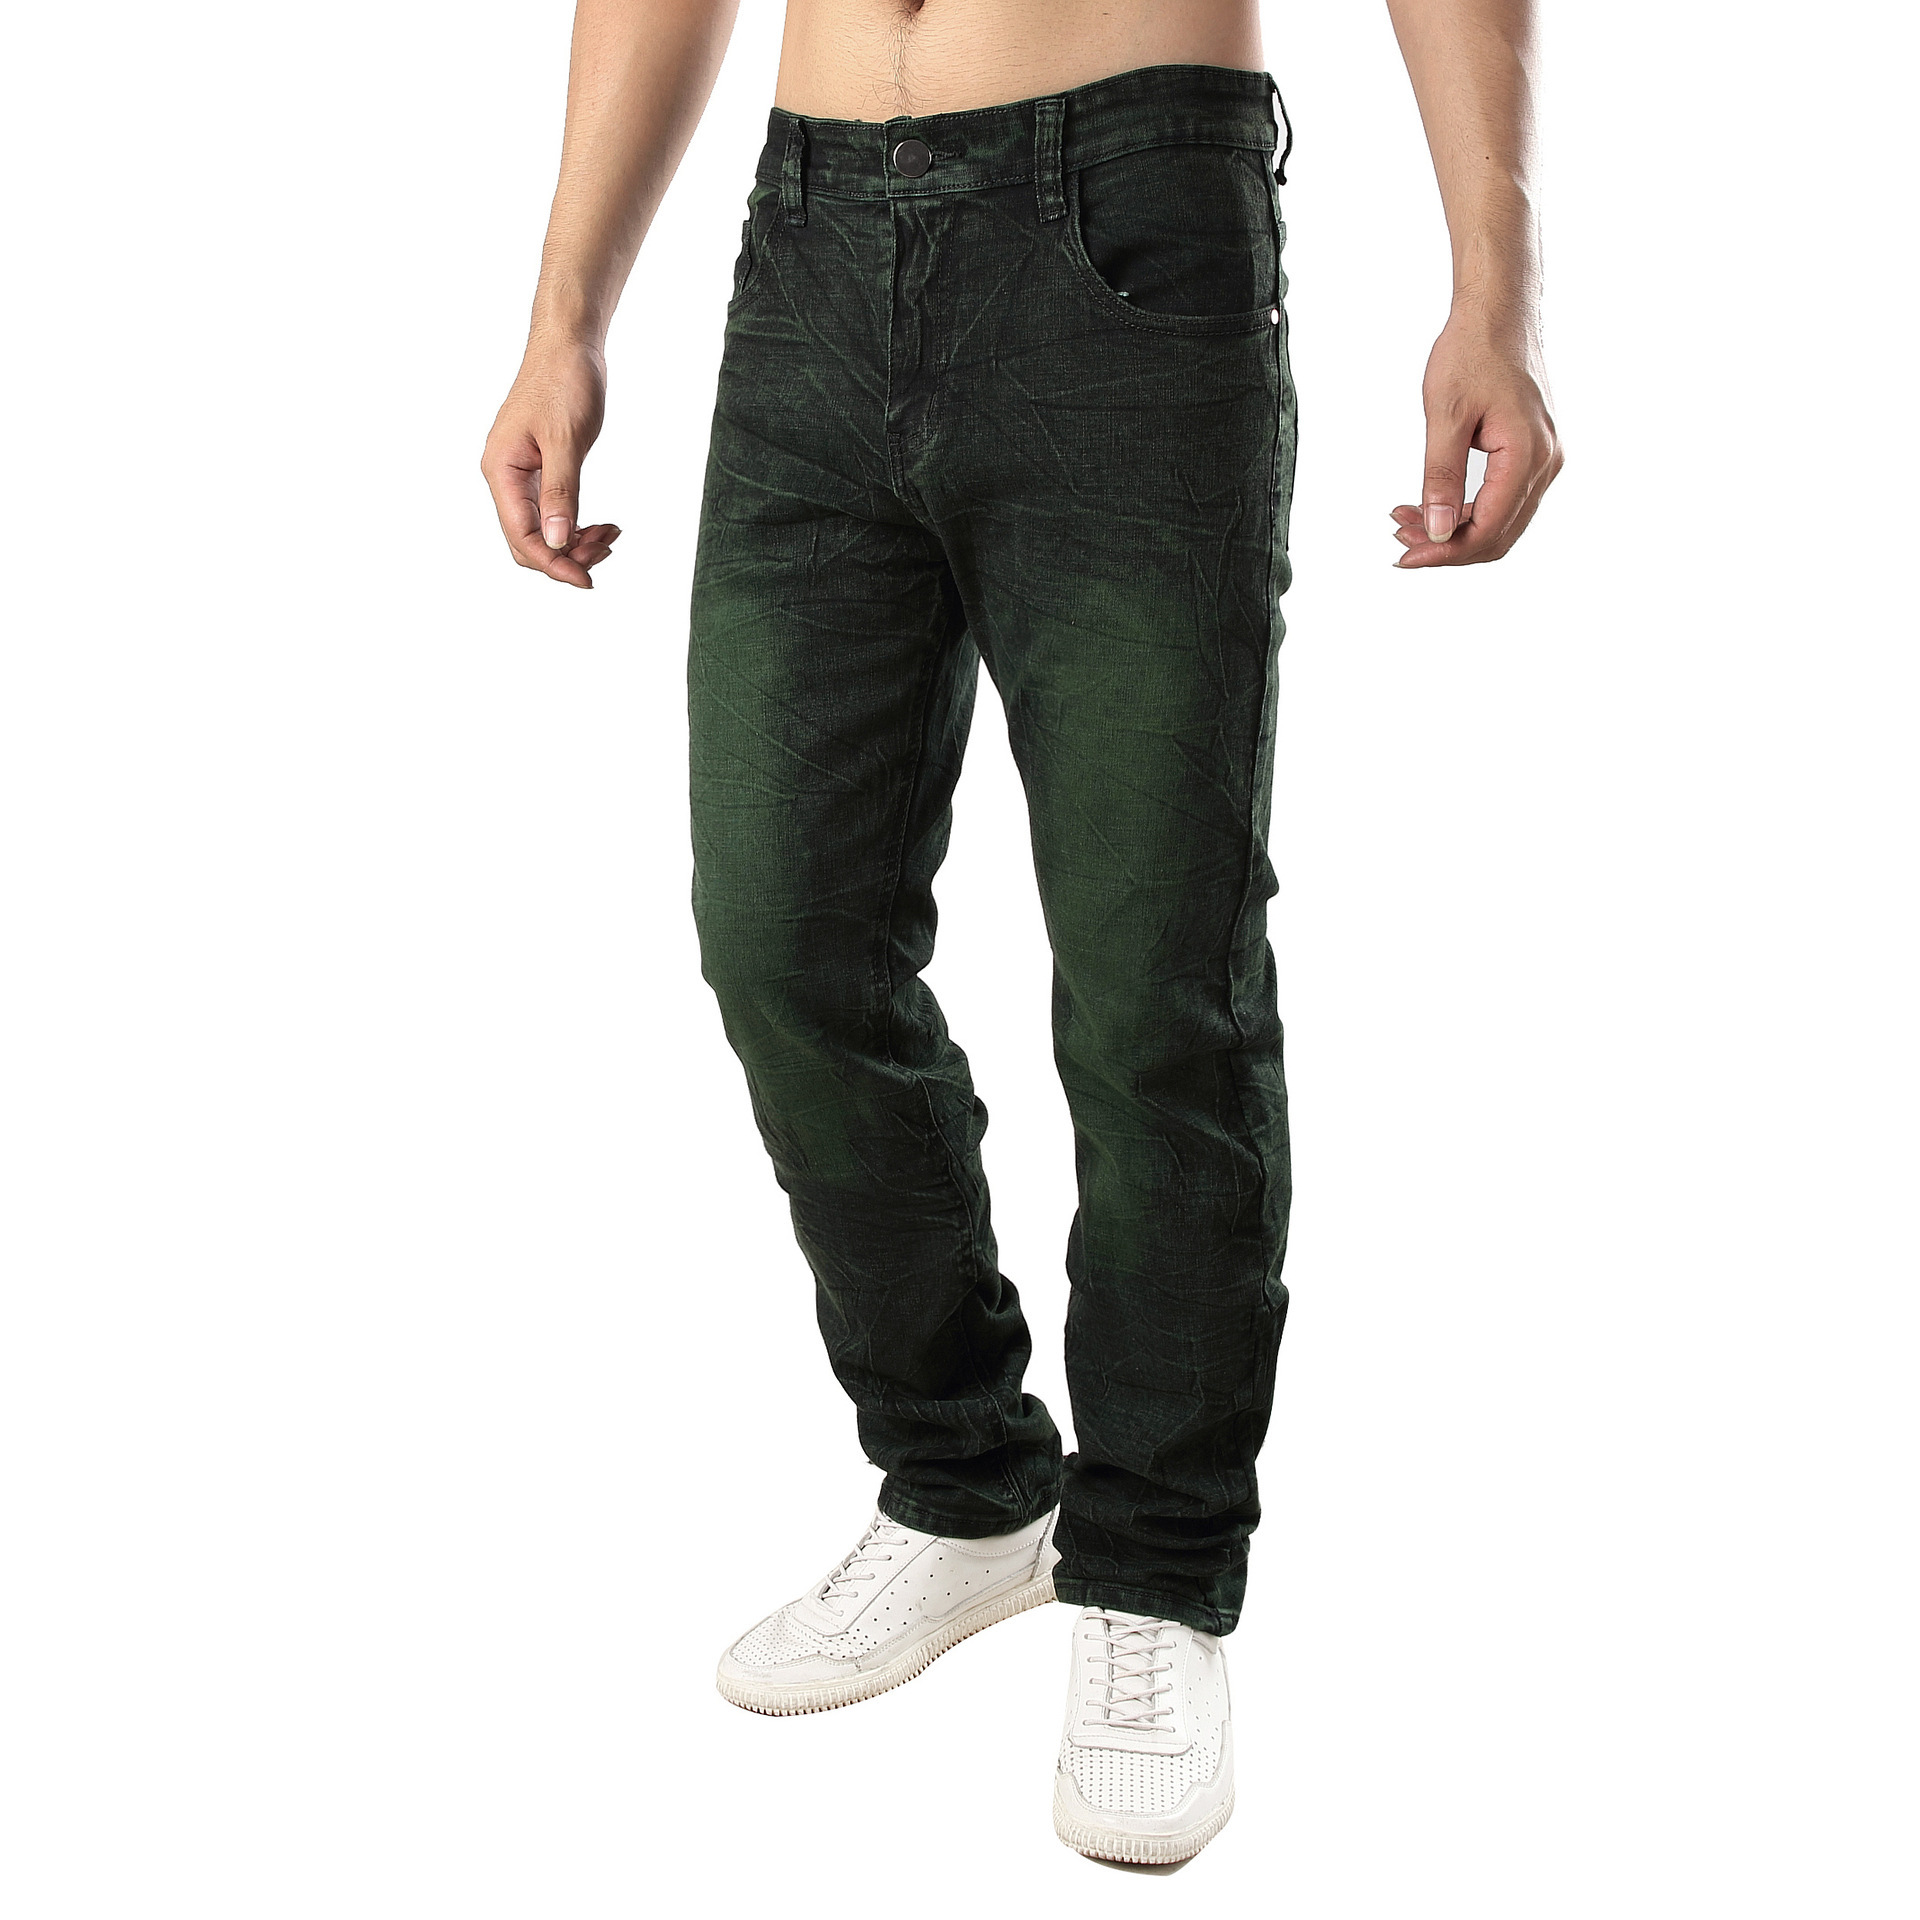 2019 Hot Selling Cowboy Trousers Men Ultra-stretch Slim Fit Jeans Dyeing Gray-green Cool Men'S Wear